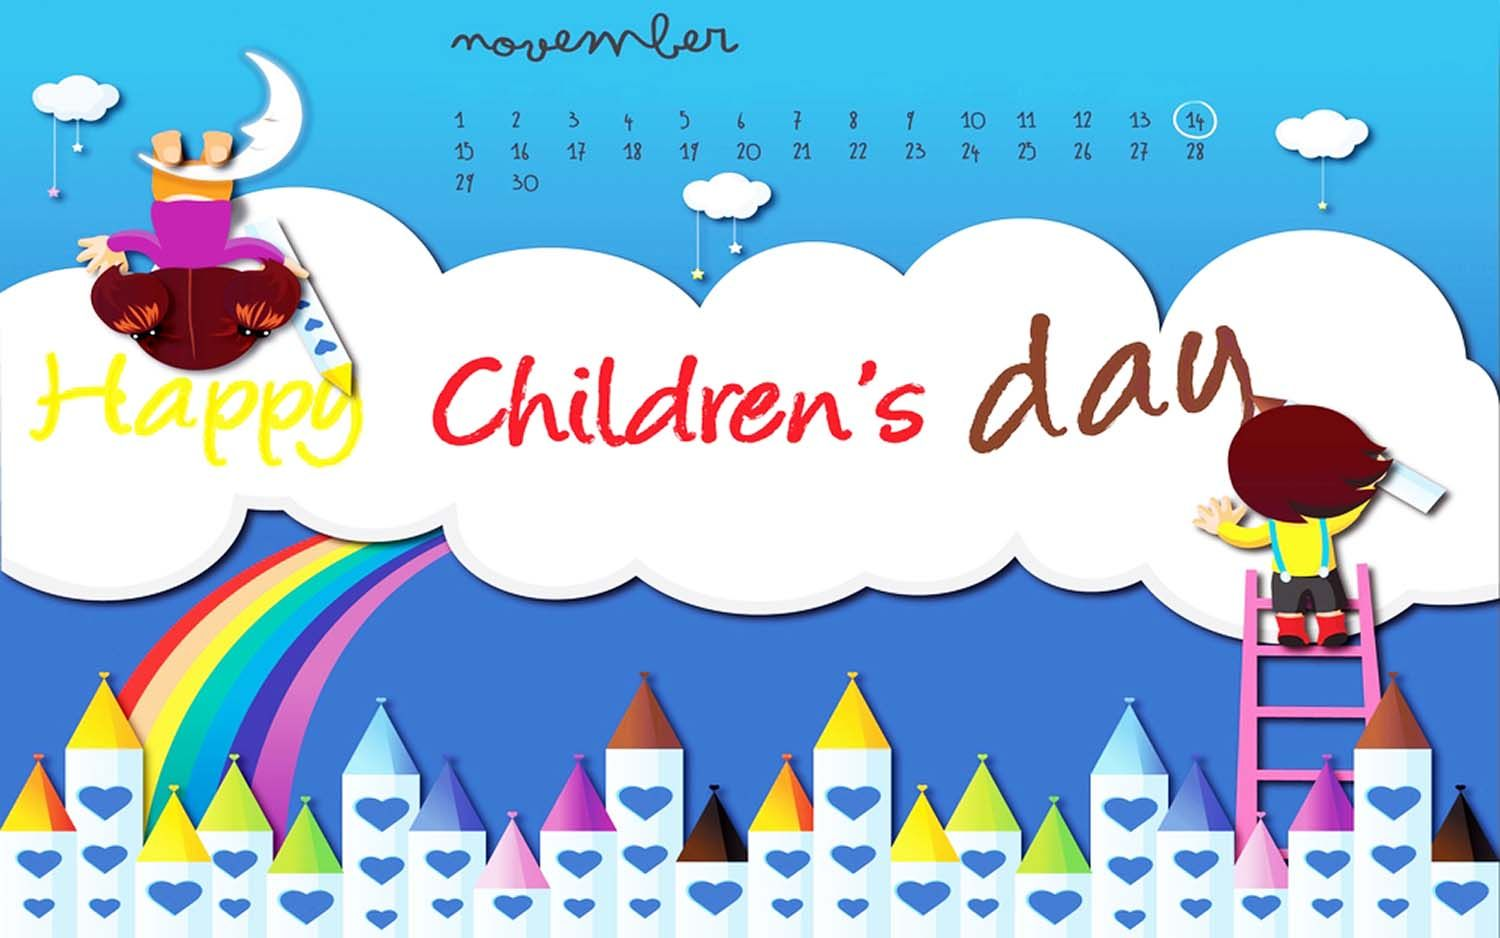 Childrens Day Wallpapers Happy Childrens Day Images Hd